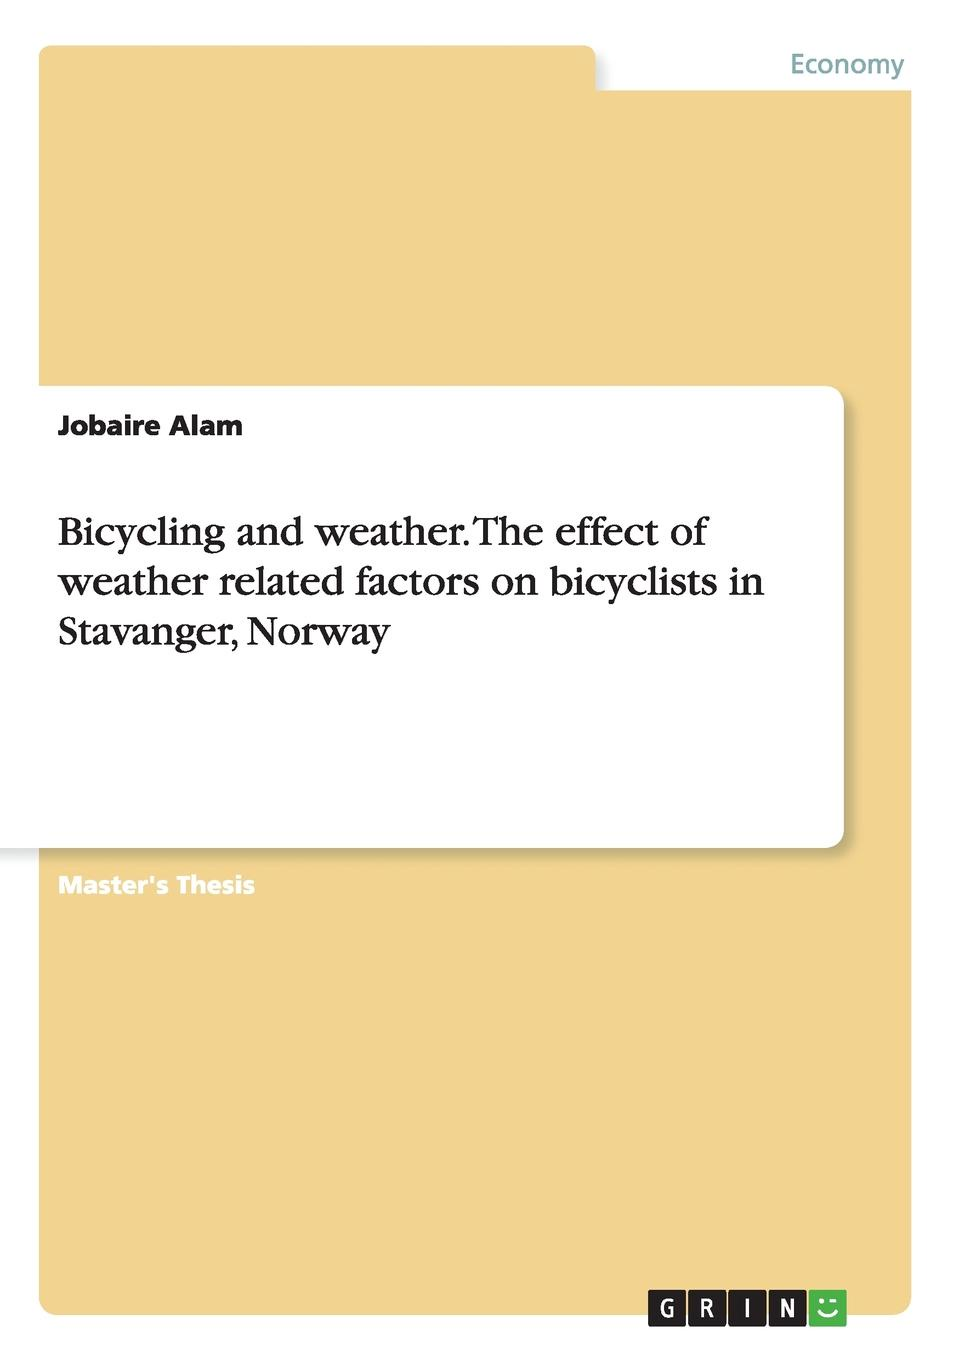 Jobaire Alam Bicycling and weather. The effect of weather related factors on bicyclists in Stavanger, Norway